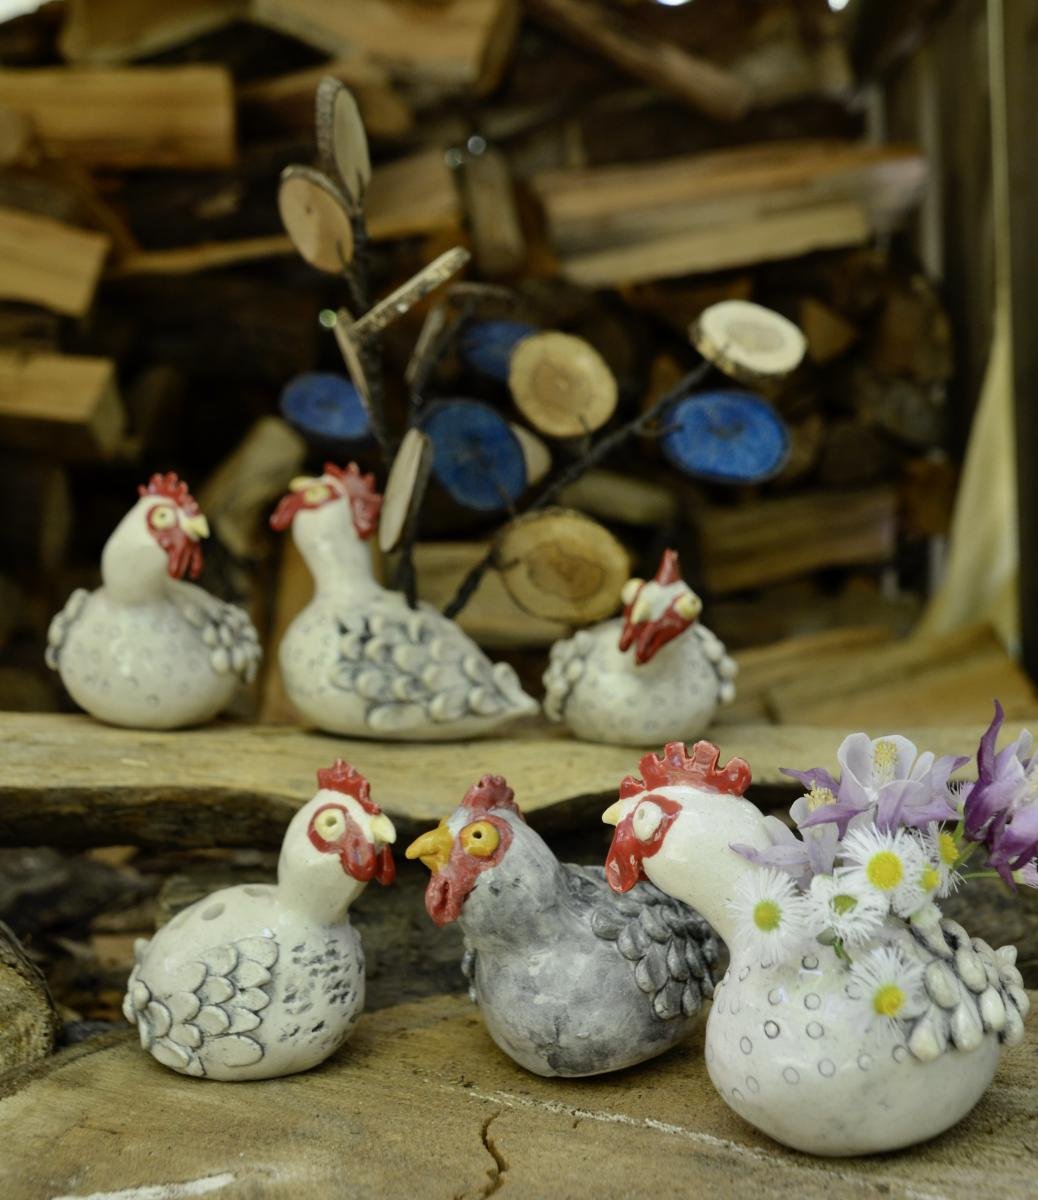 Chickens decoration